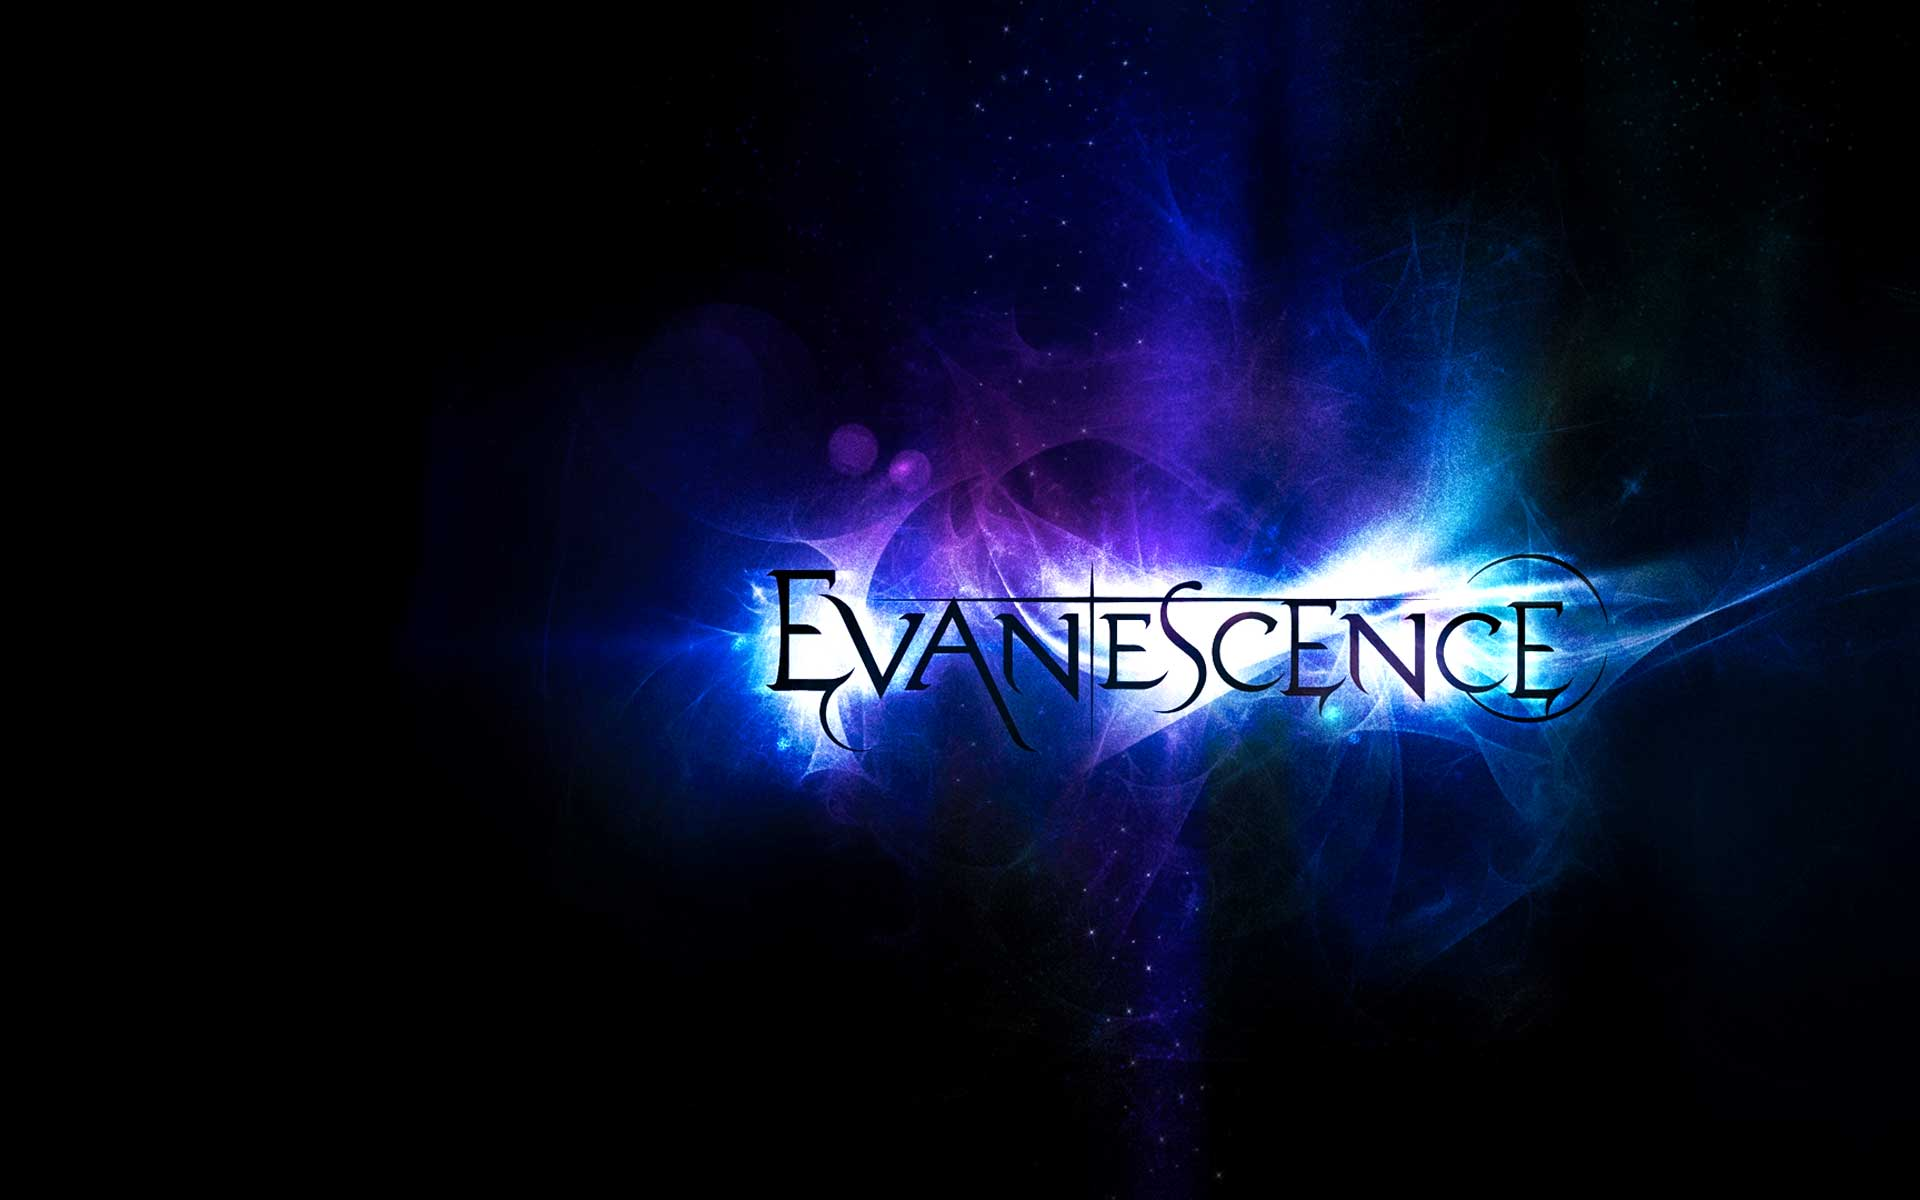 Evanescence Wallpaper HD 1920x1200